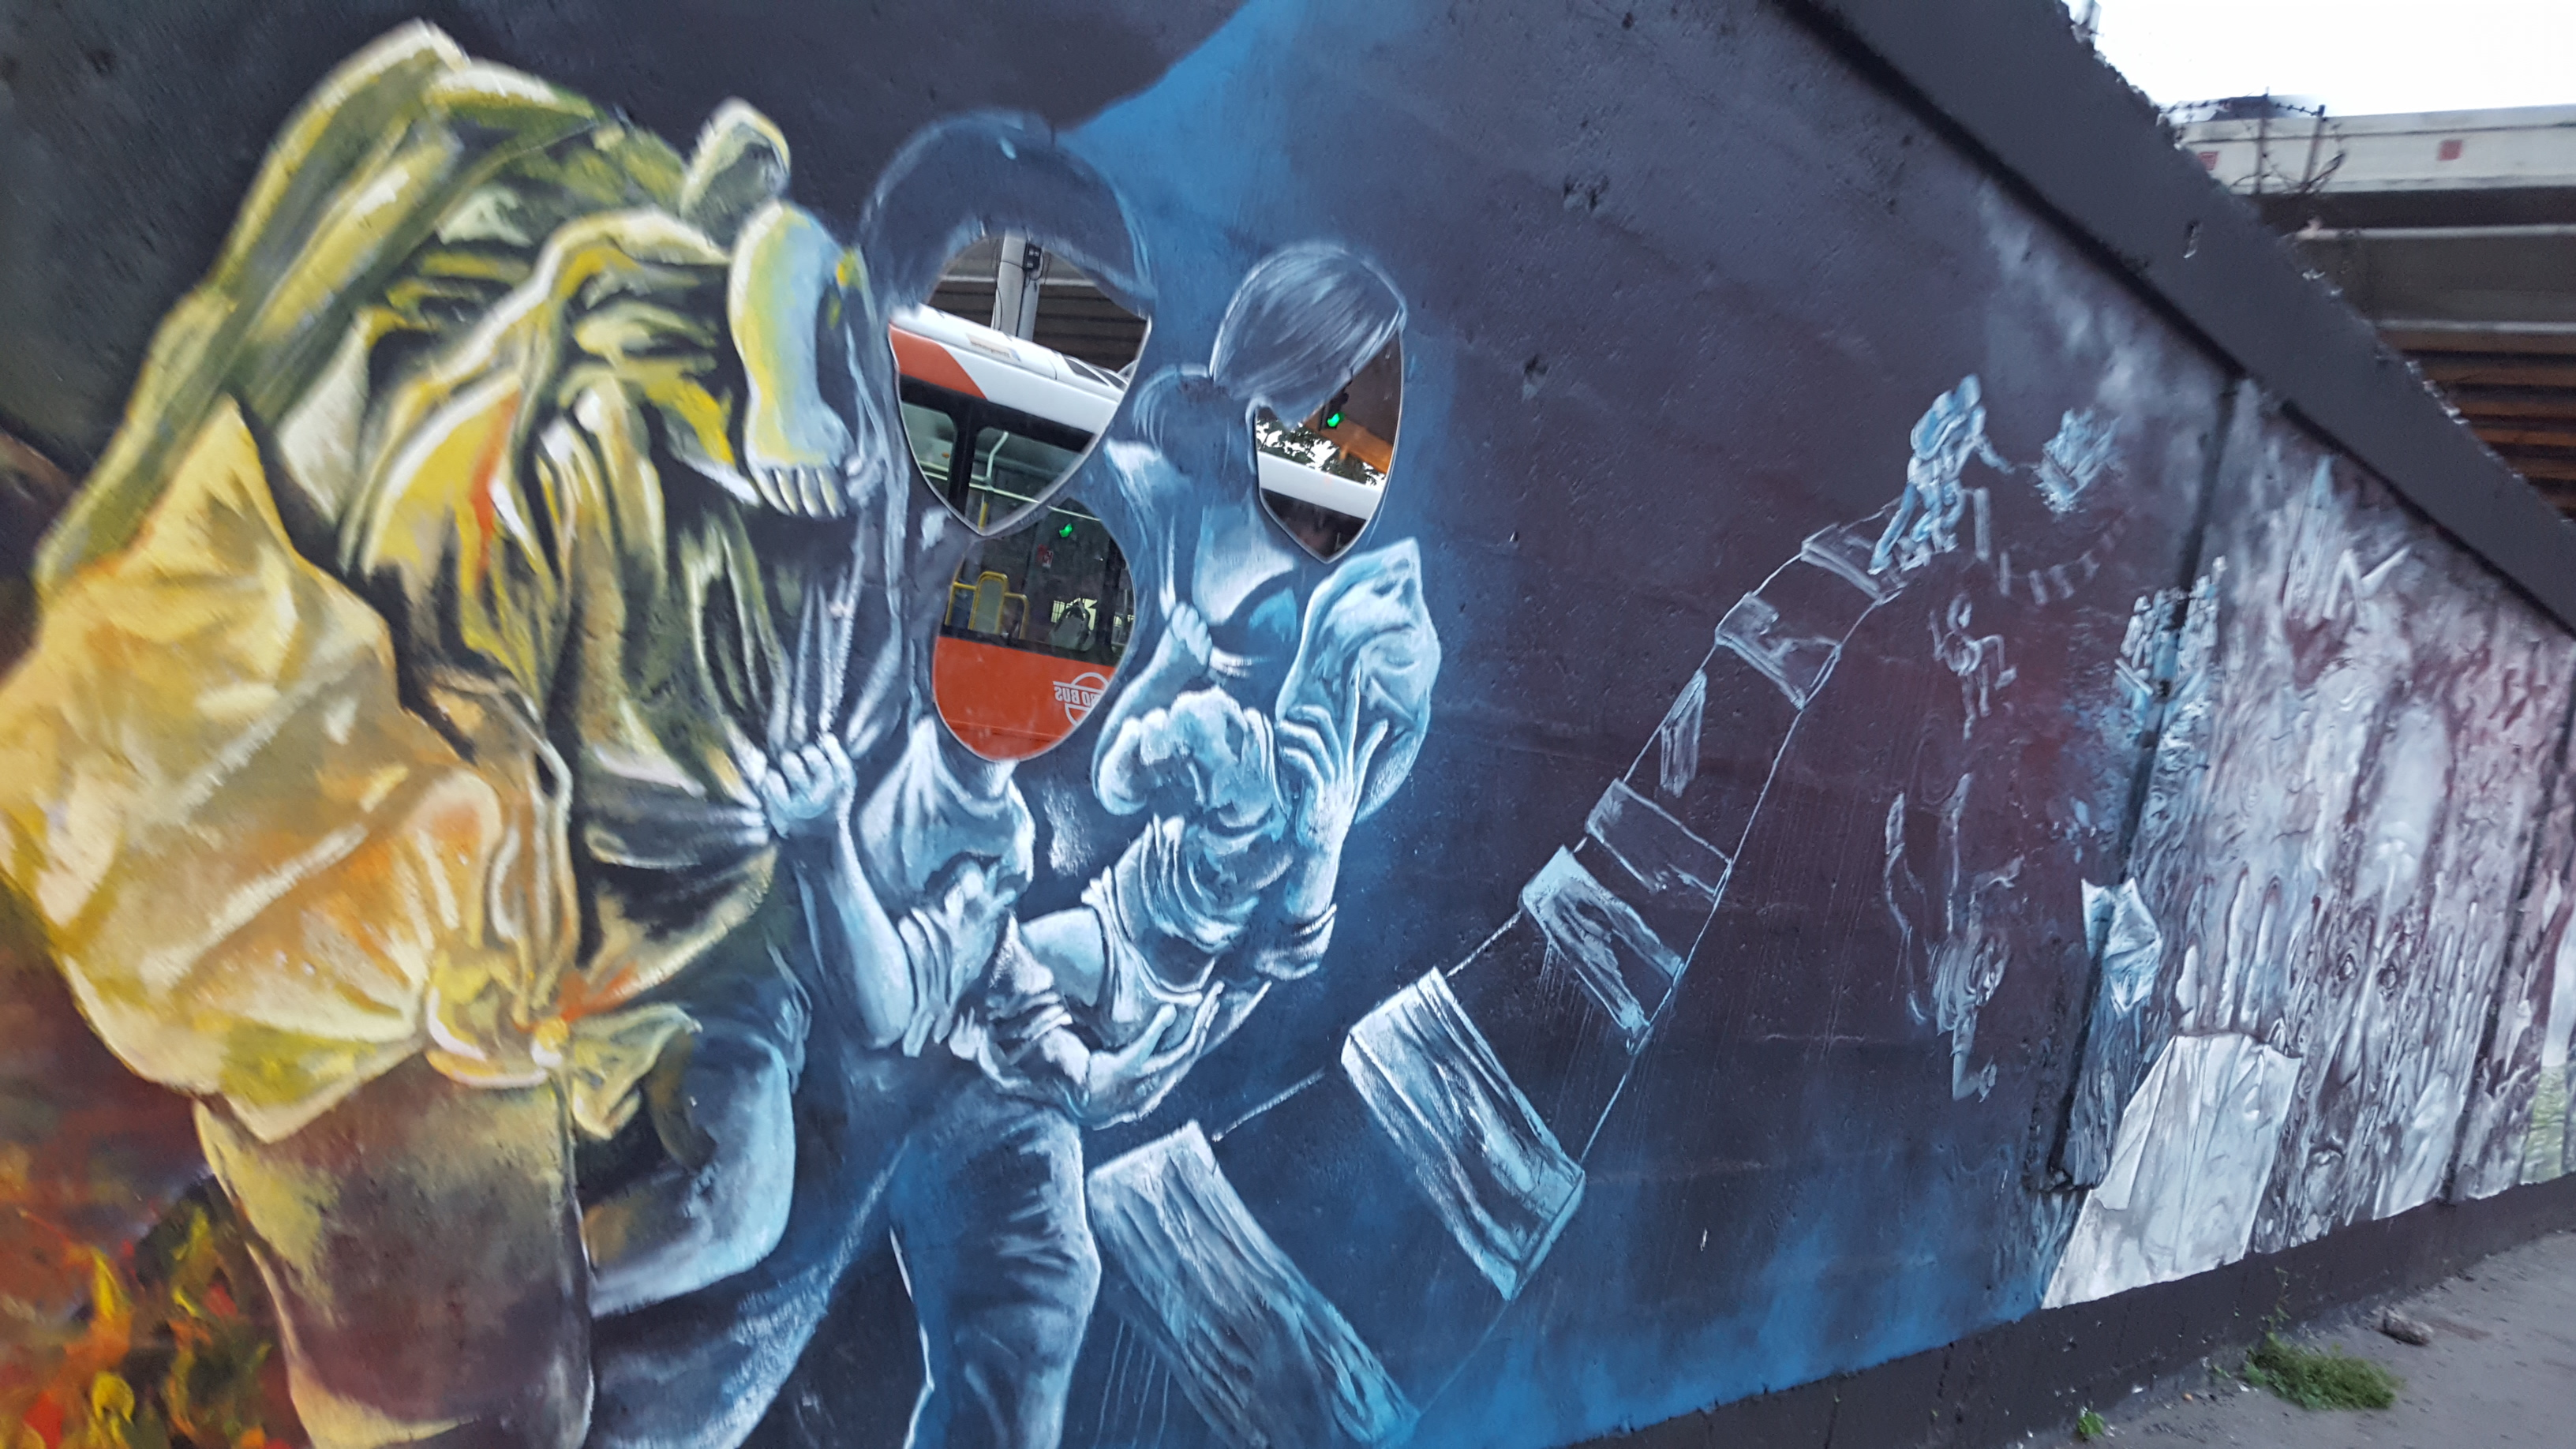 2016-05-24 mural_5_de-mayo_district_panama_city_panama (4)